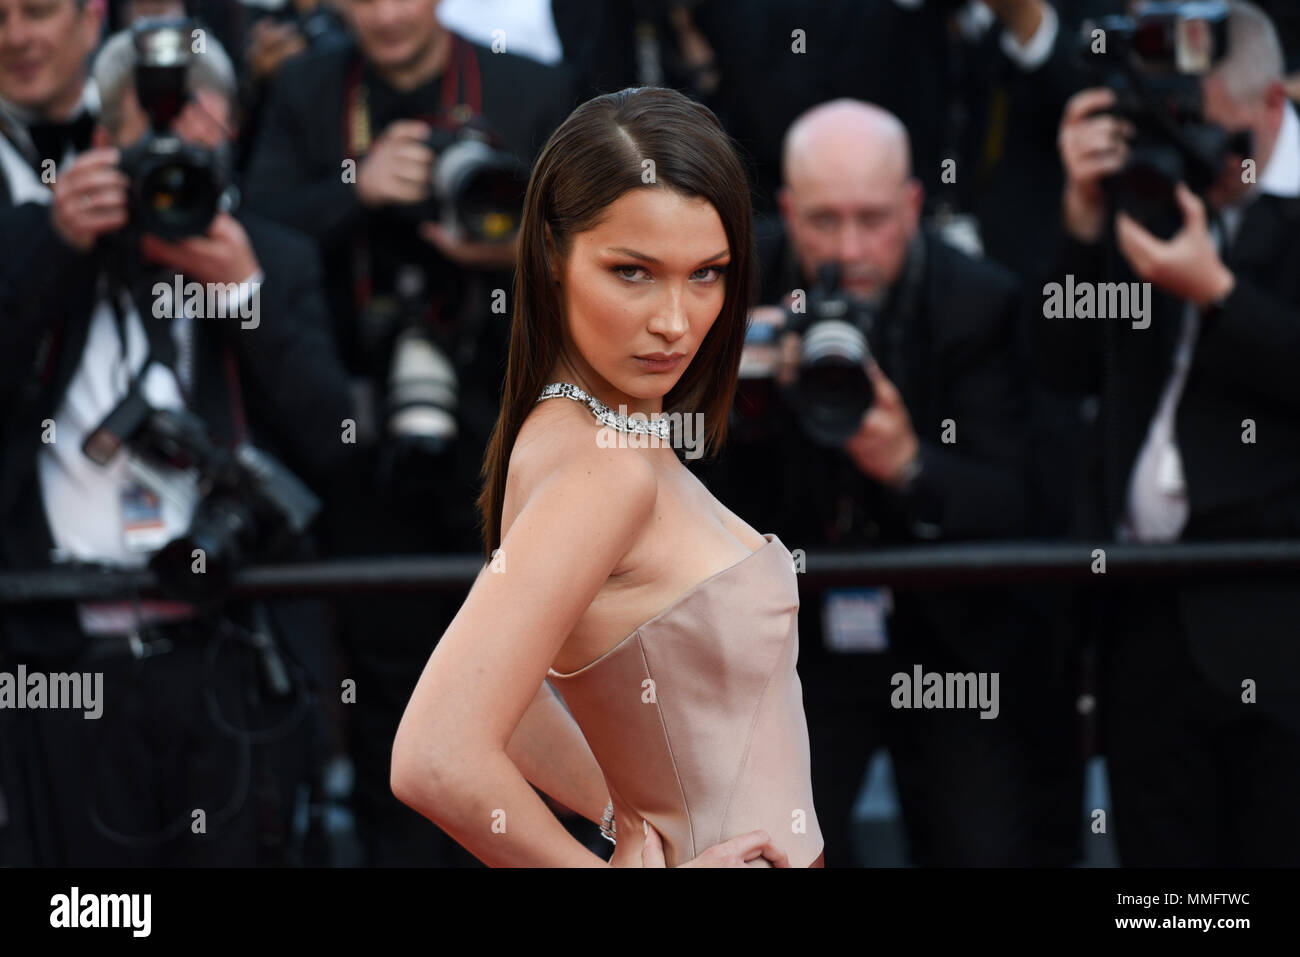 Cannes, France. May 11, 2018 - Cannes, France: Bella Hadid attends the 'Ash is the Purest White' premiere during the 71st Cannes film festival. Credit: Idealink Photography/Alamy Live News Stock Photo